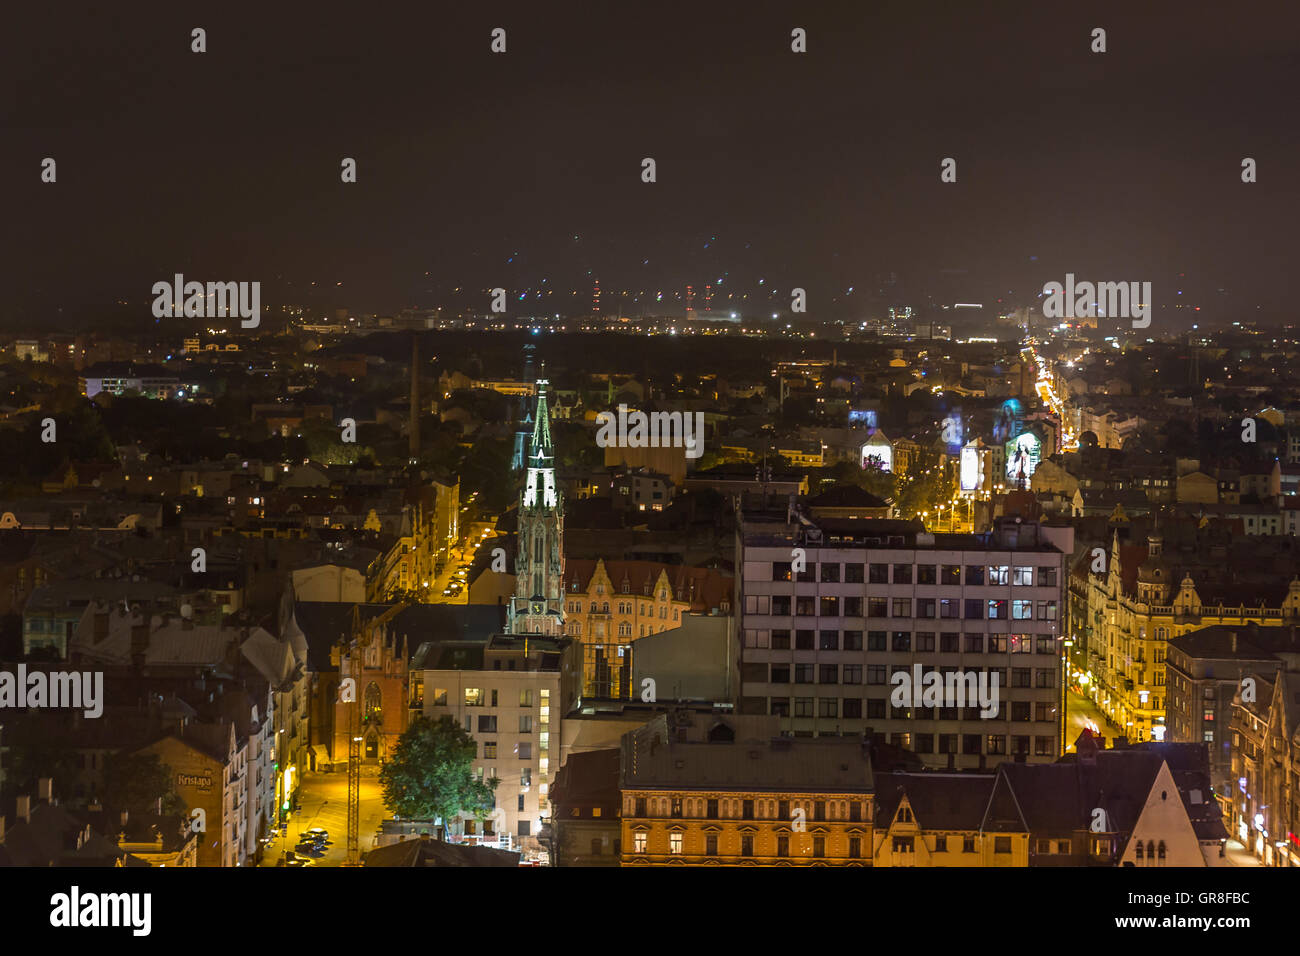 Fascinating View On The Night Scenery Of Riva Of The Capital Of Latvia - Stock Image